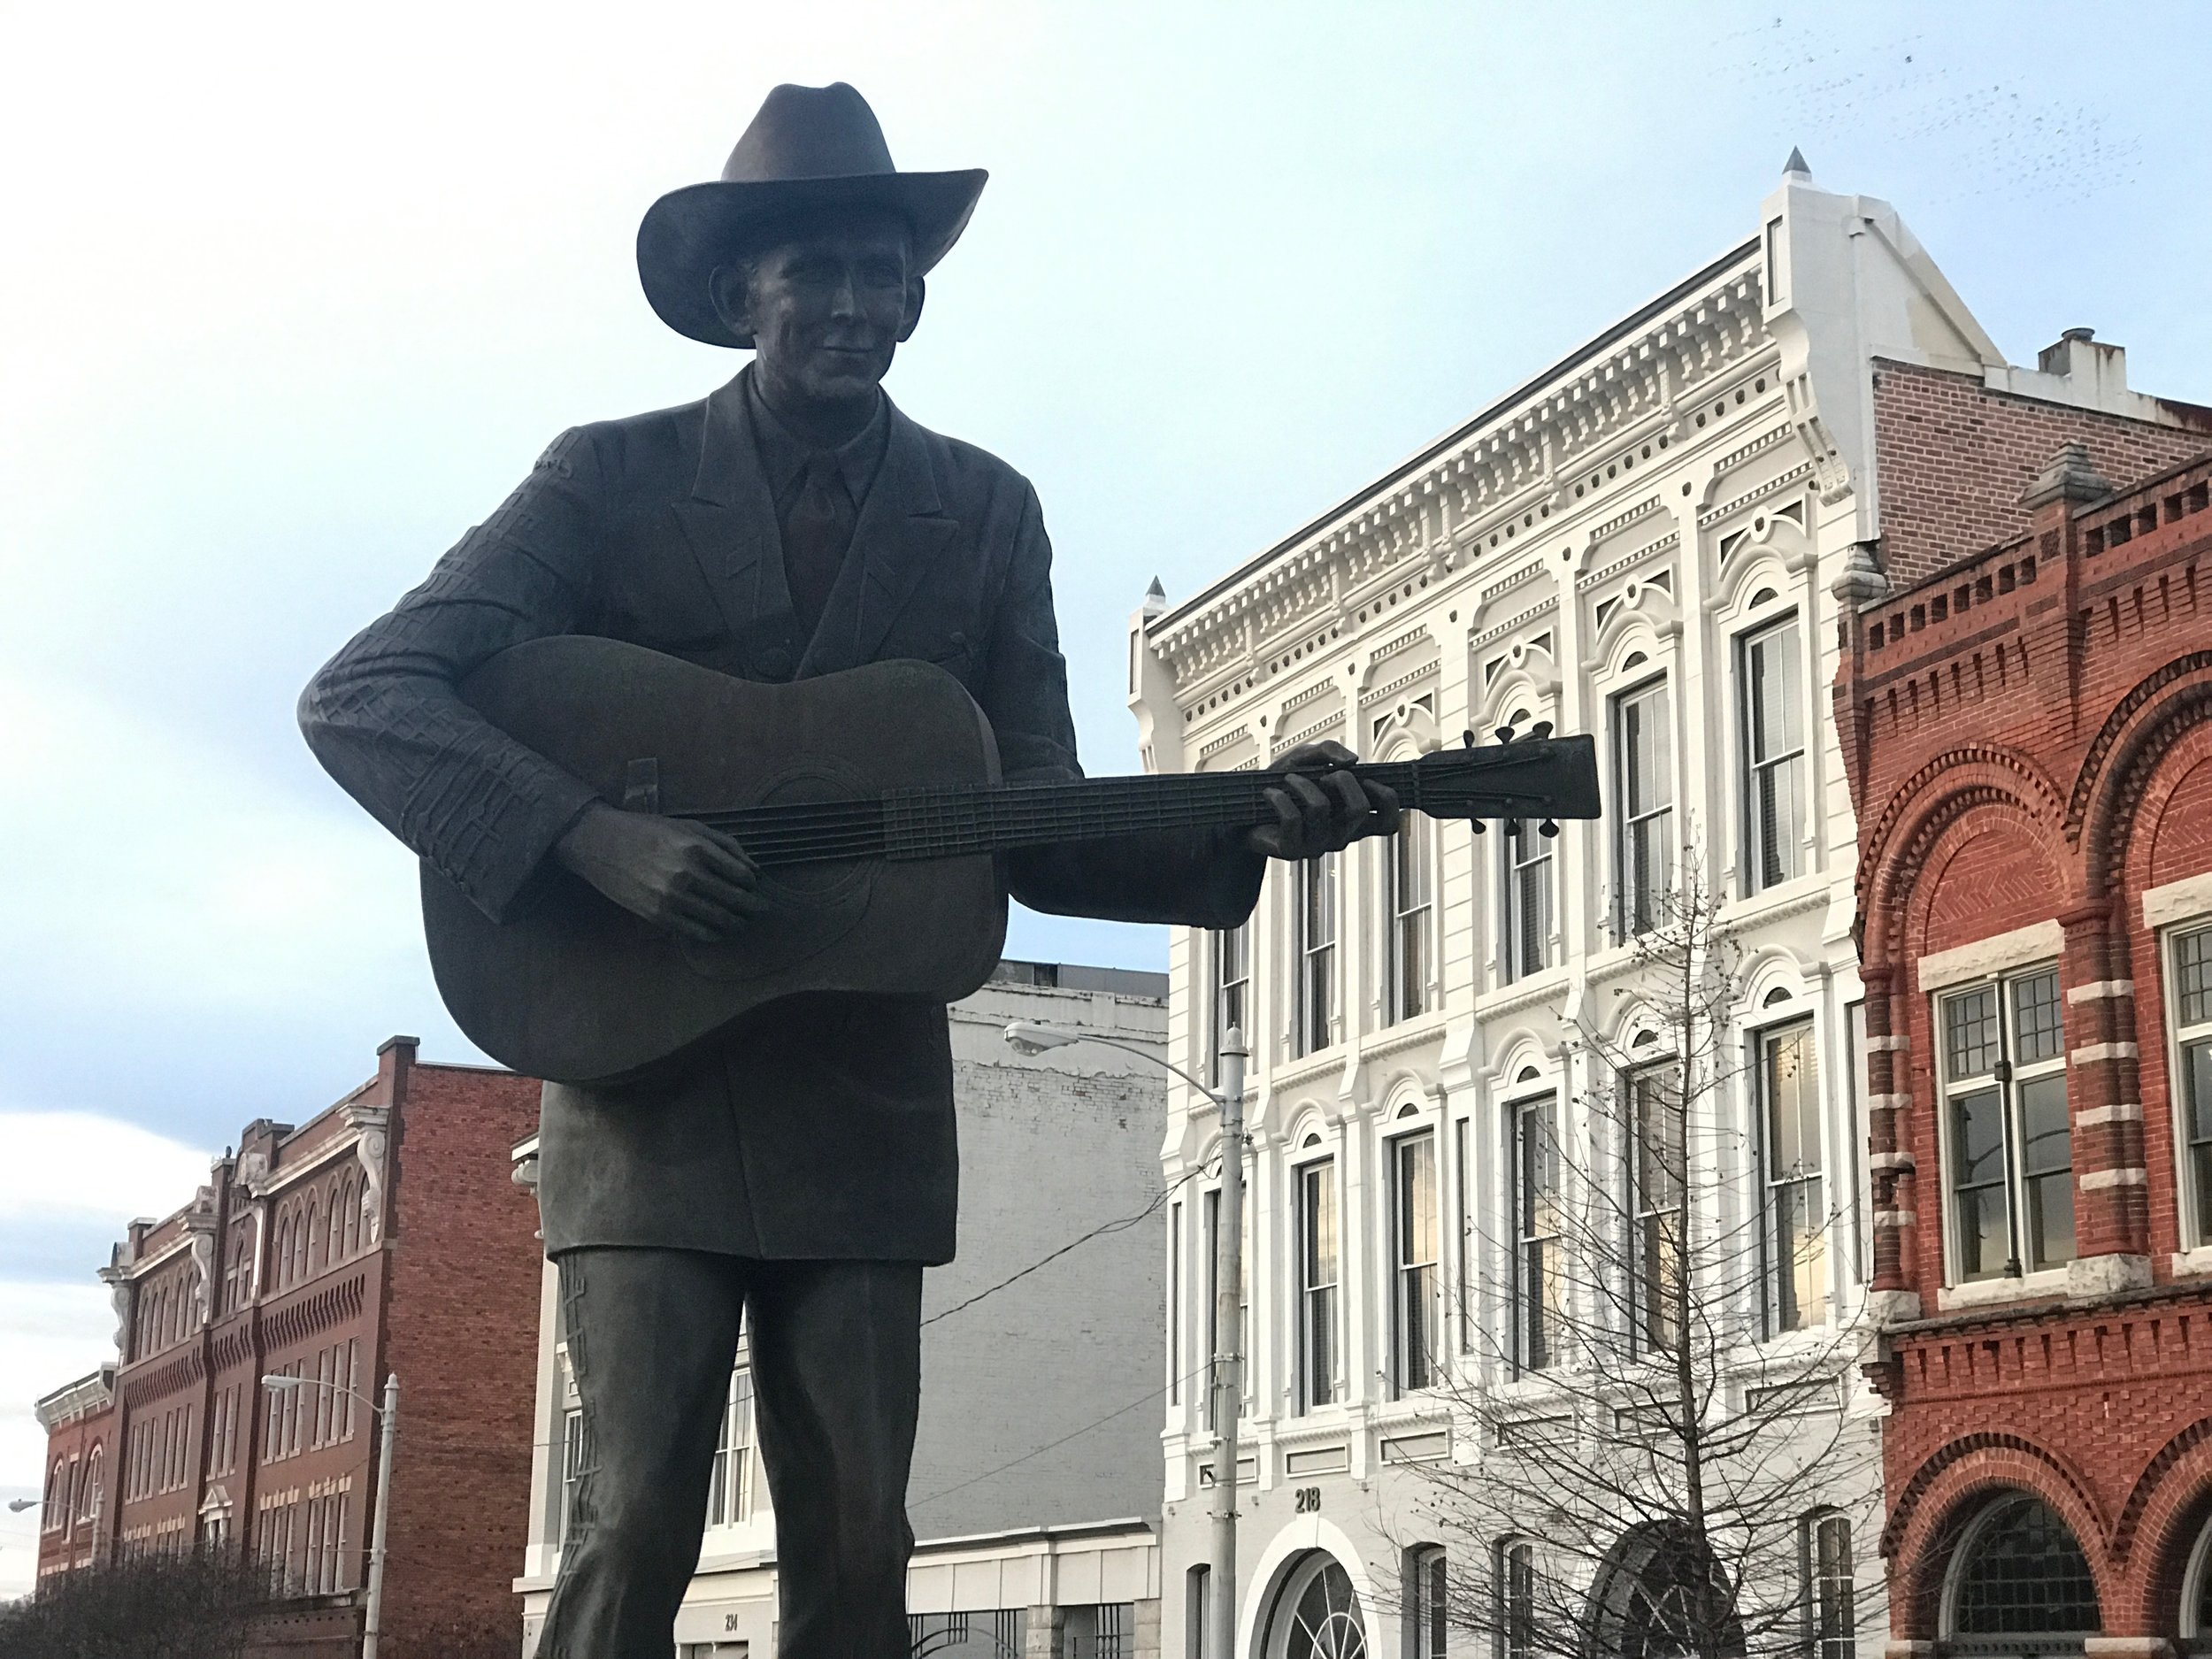 Hank Williams Sr. presides over Commerce Street in Montgomery.